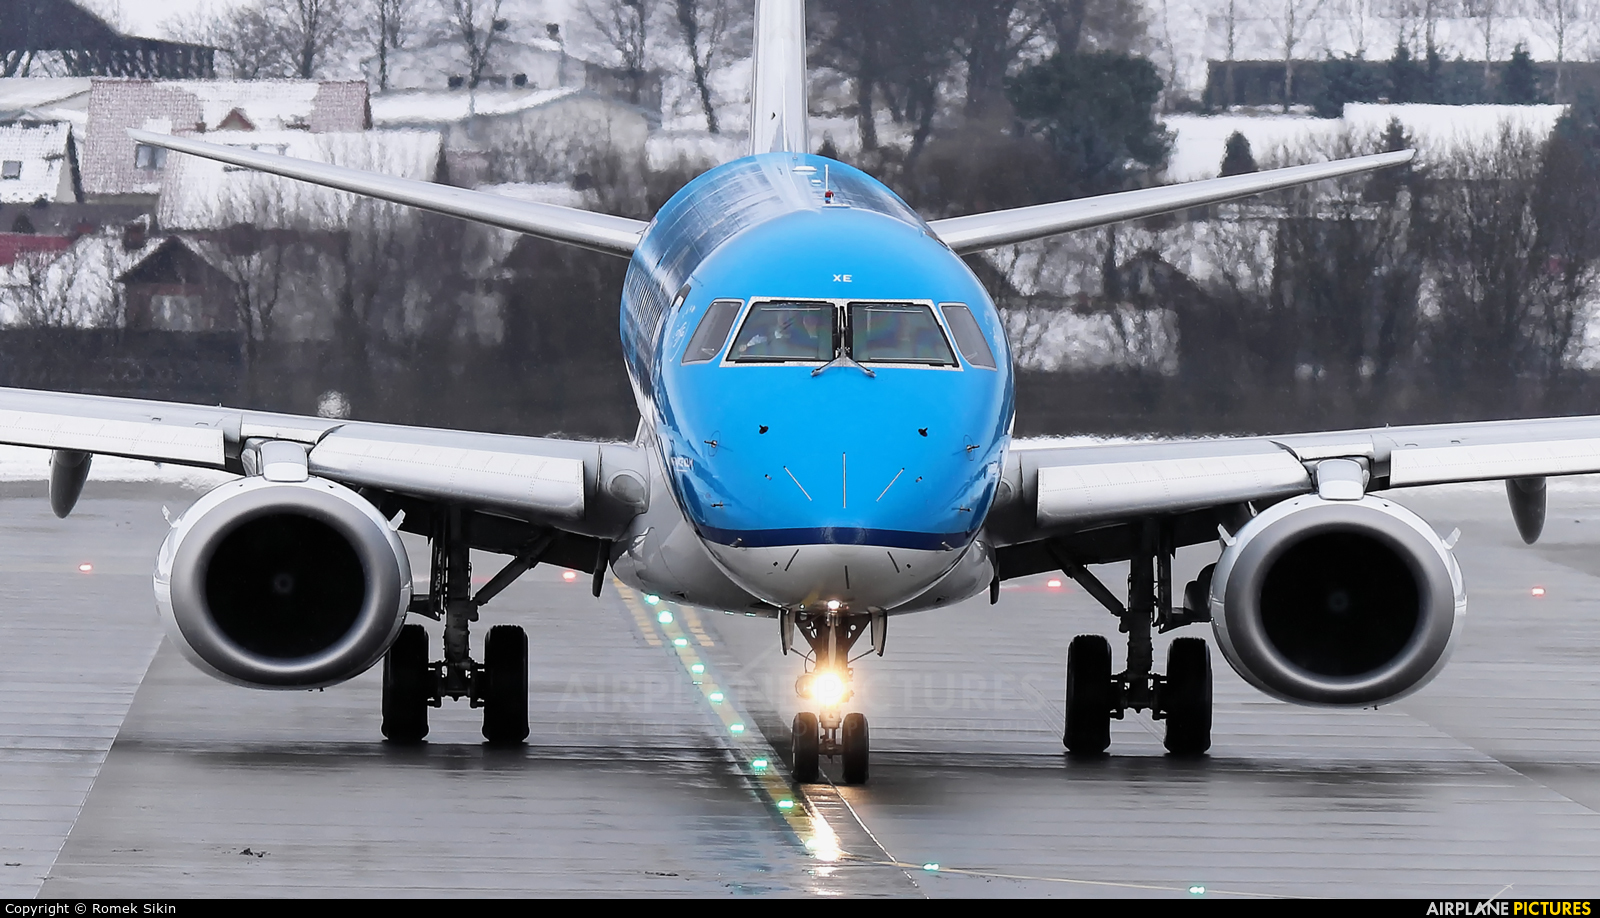 KLM Cityhopper PH-EXE aircraft at Kraków - John Paul II Intl